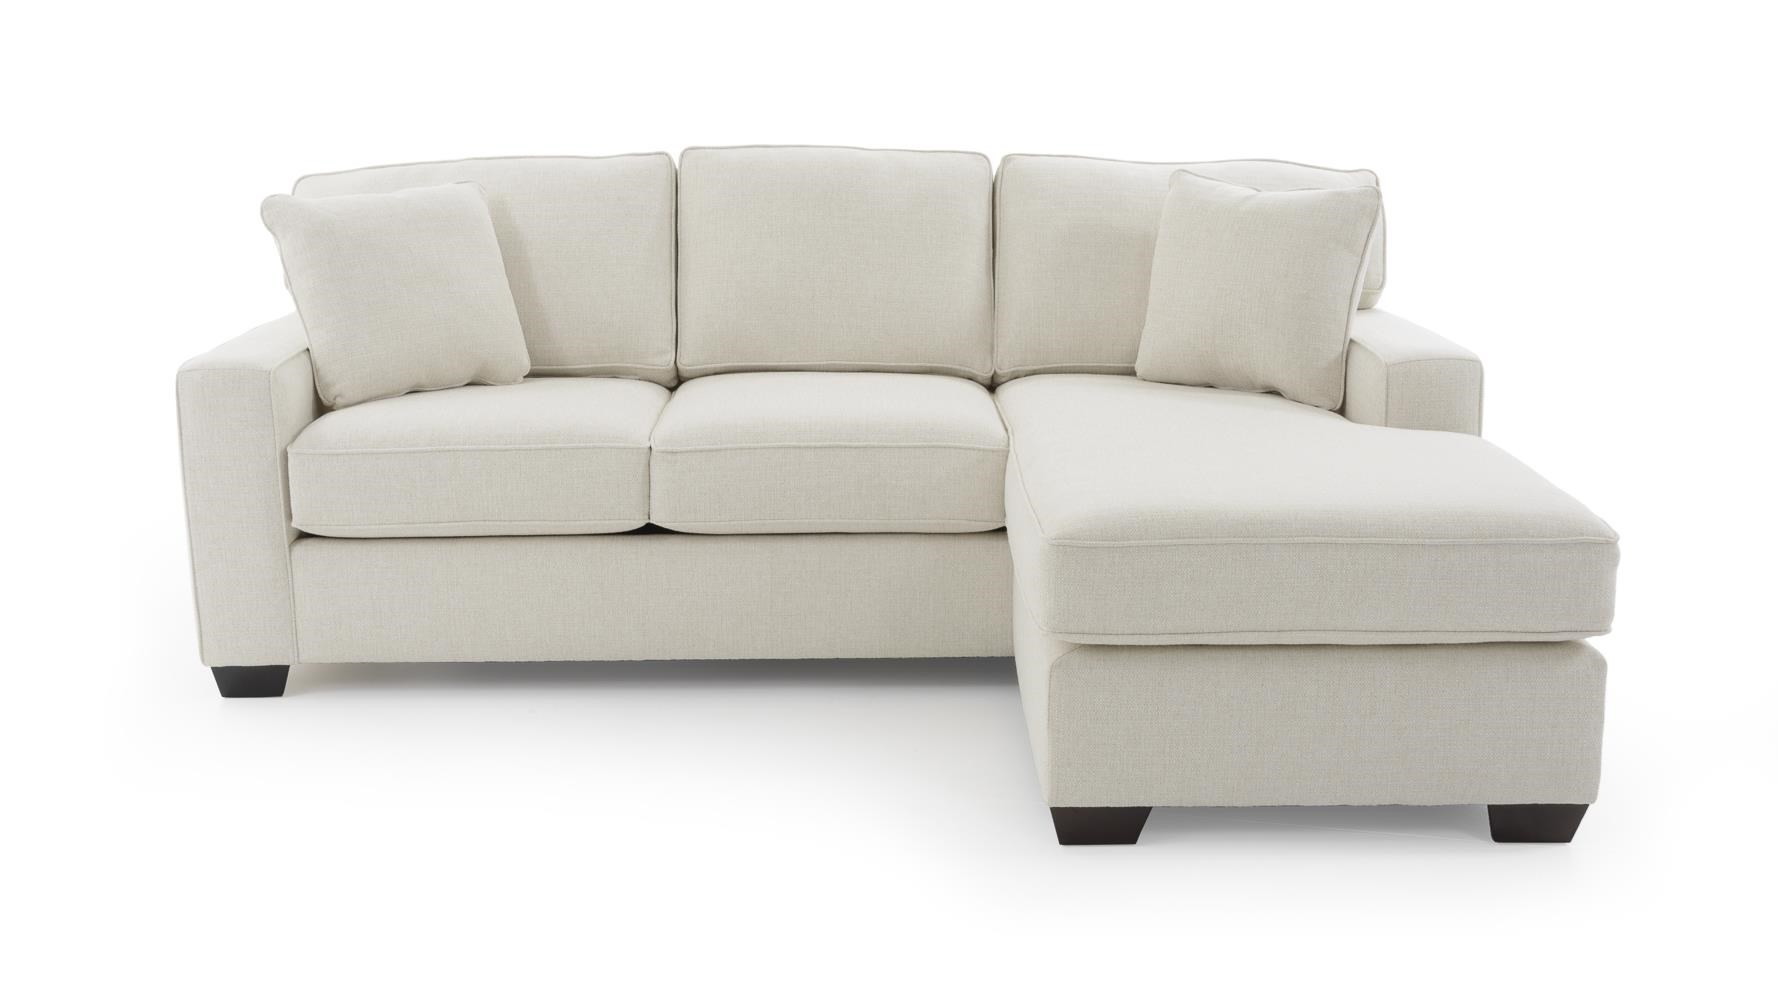 King-Sized Sofa Sleeper with Memory Foam Mattress and Removable Chaise